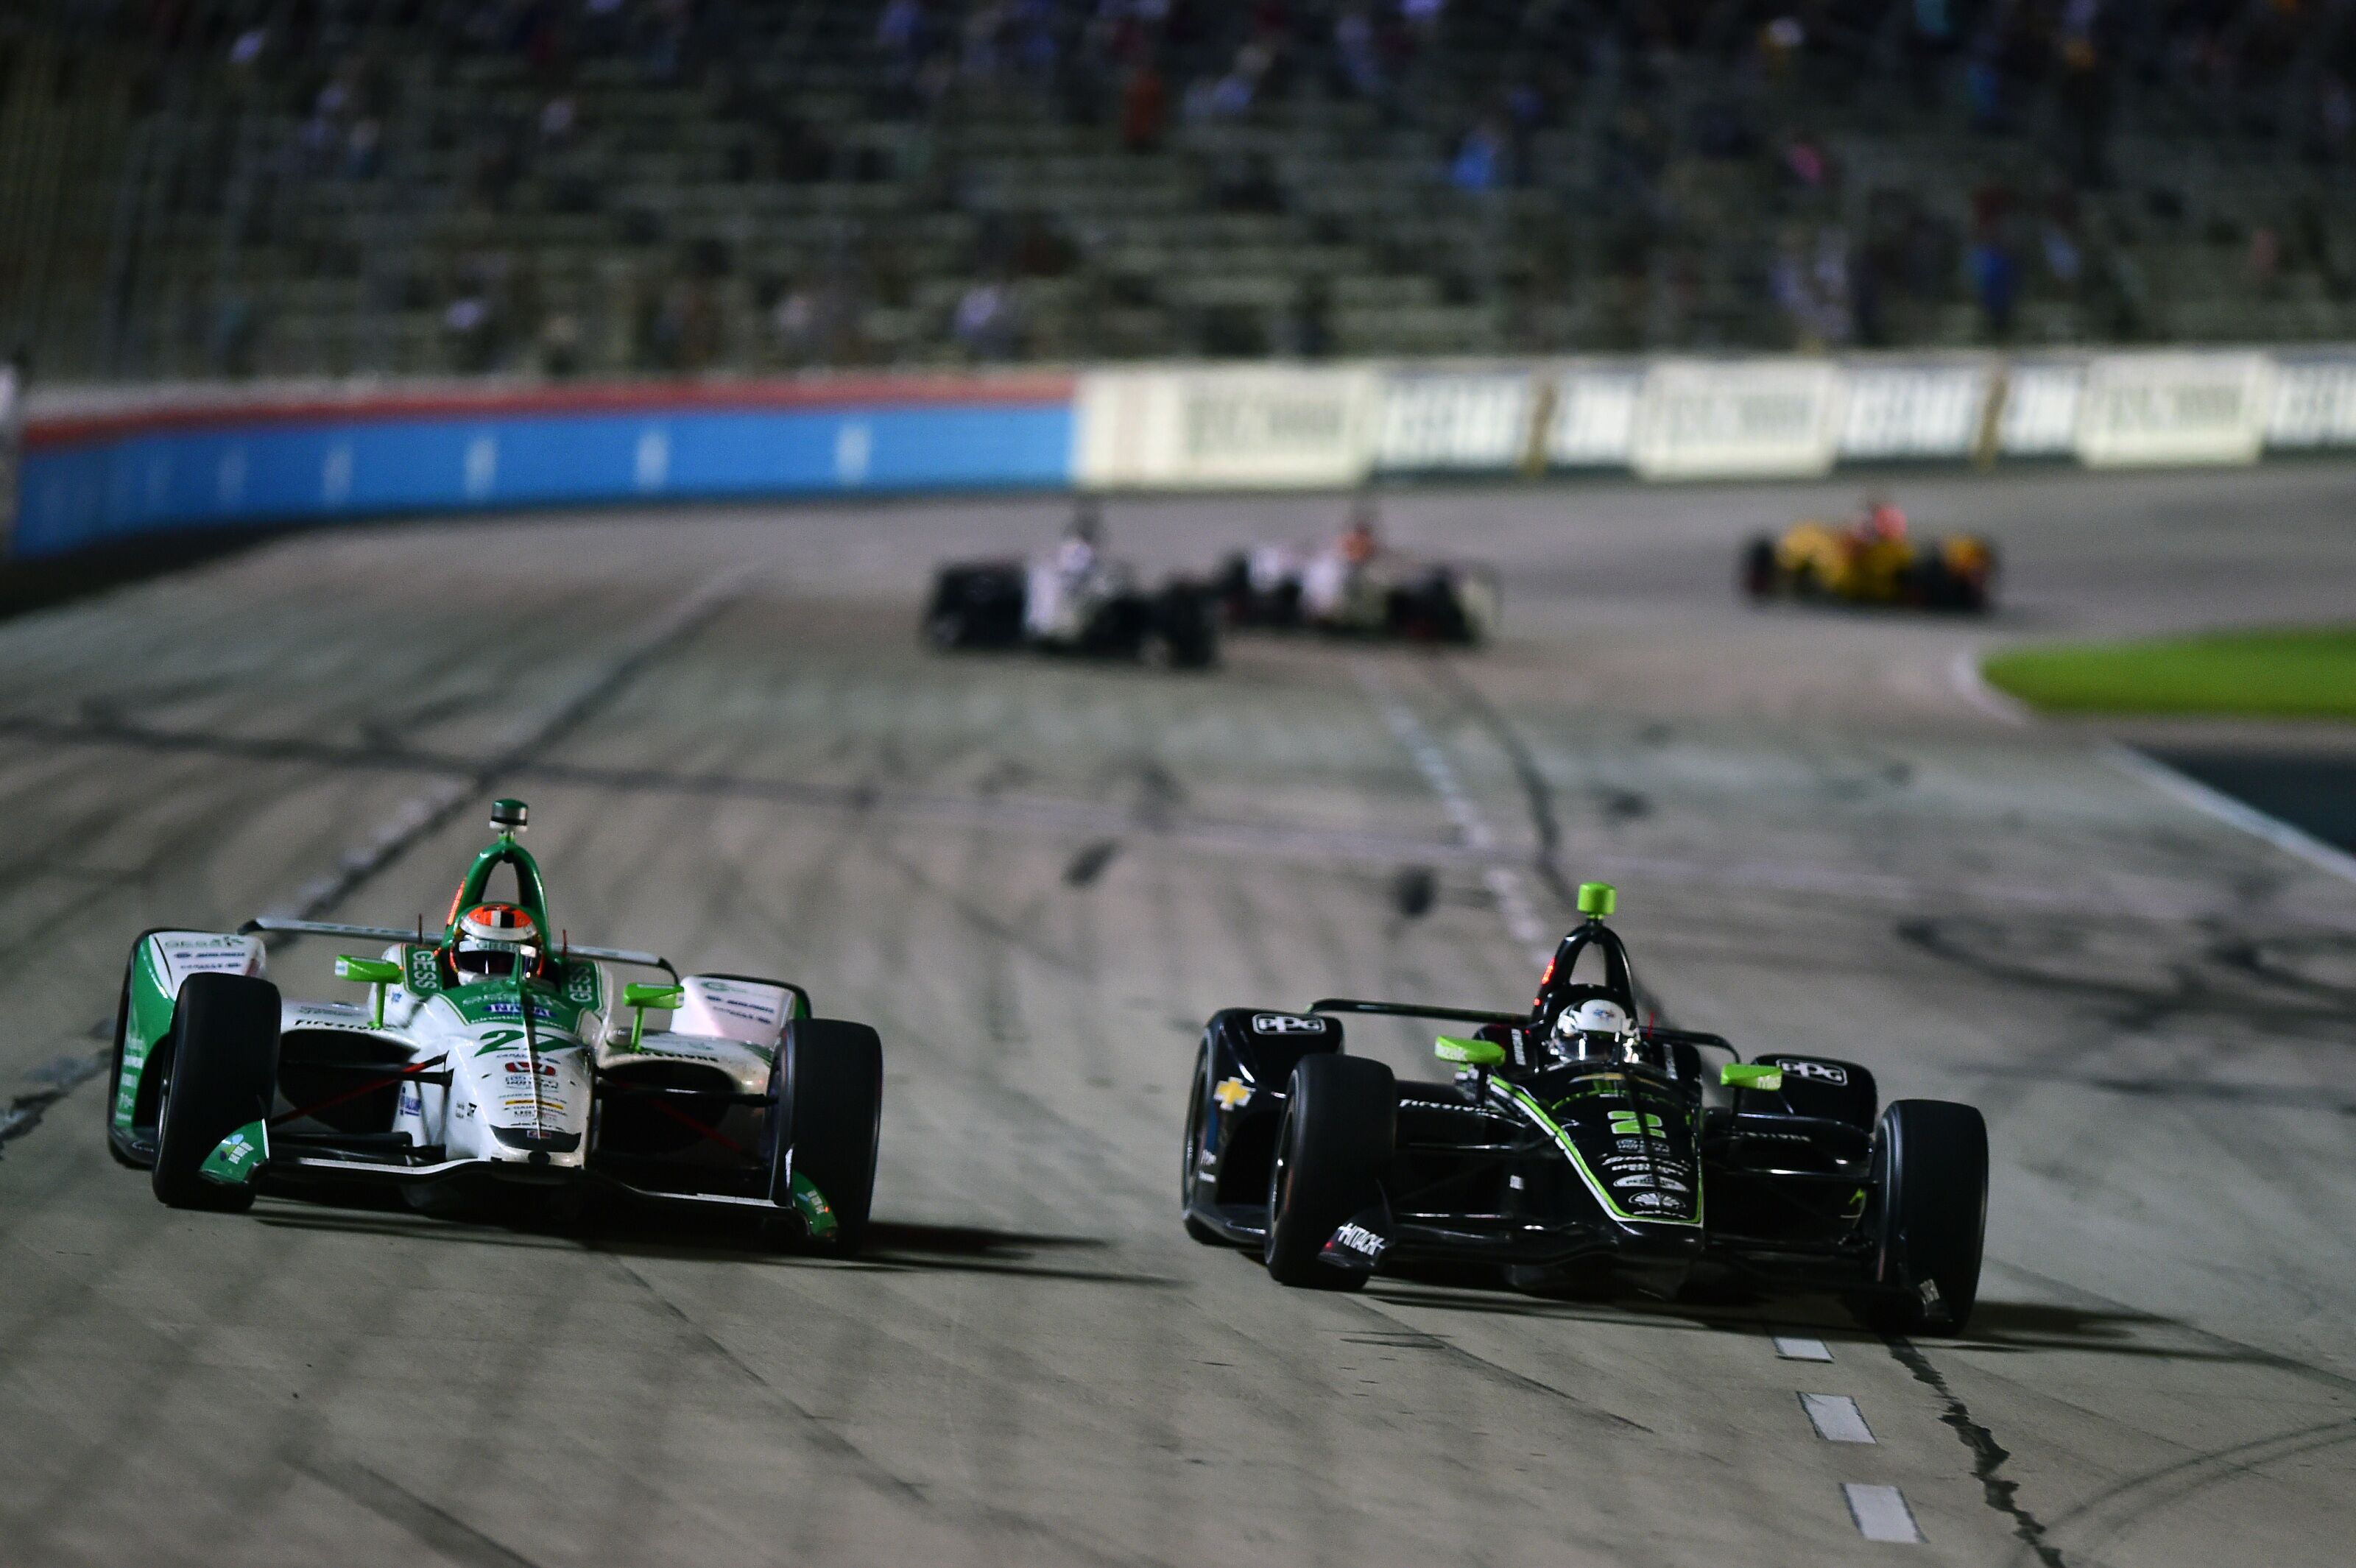 IndyCar: Pivotal three-week stint for Chevrolet, Honda, contenders